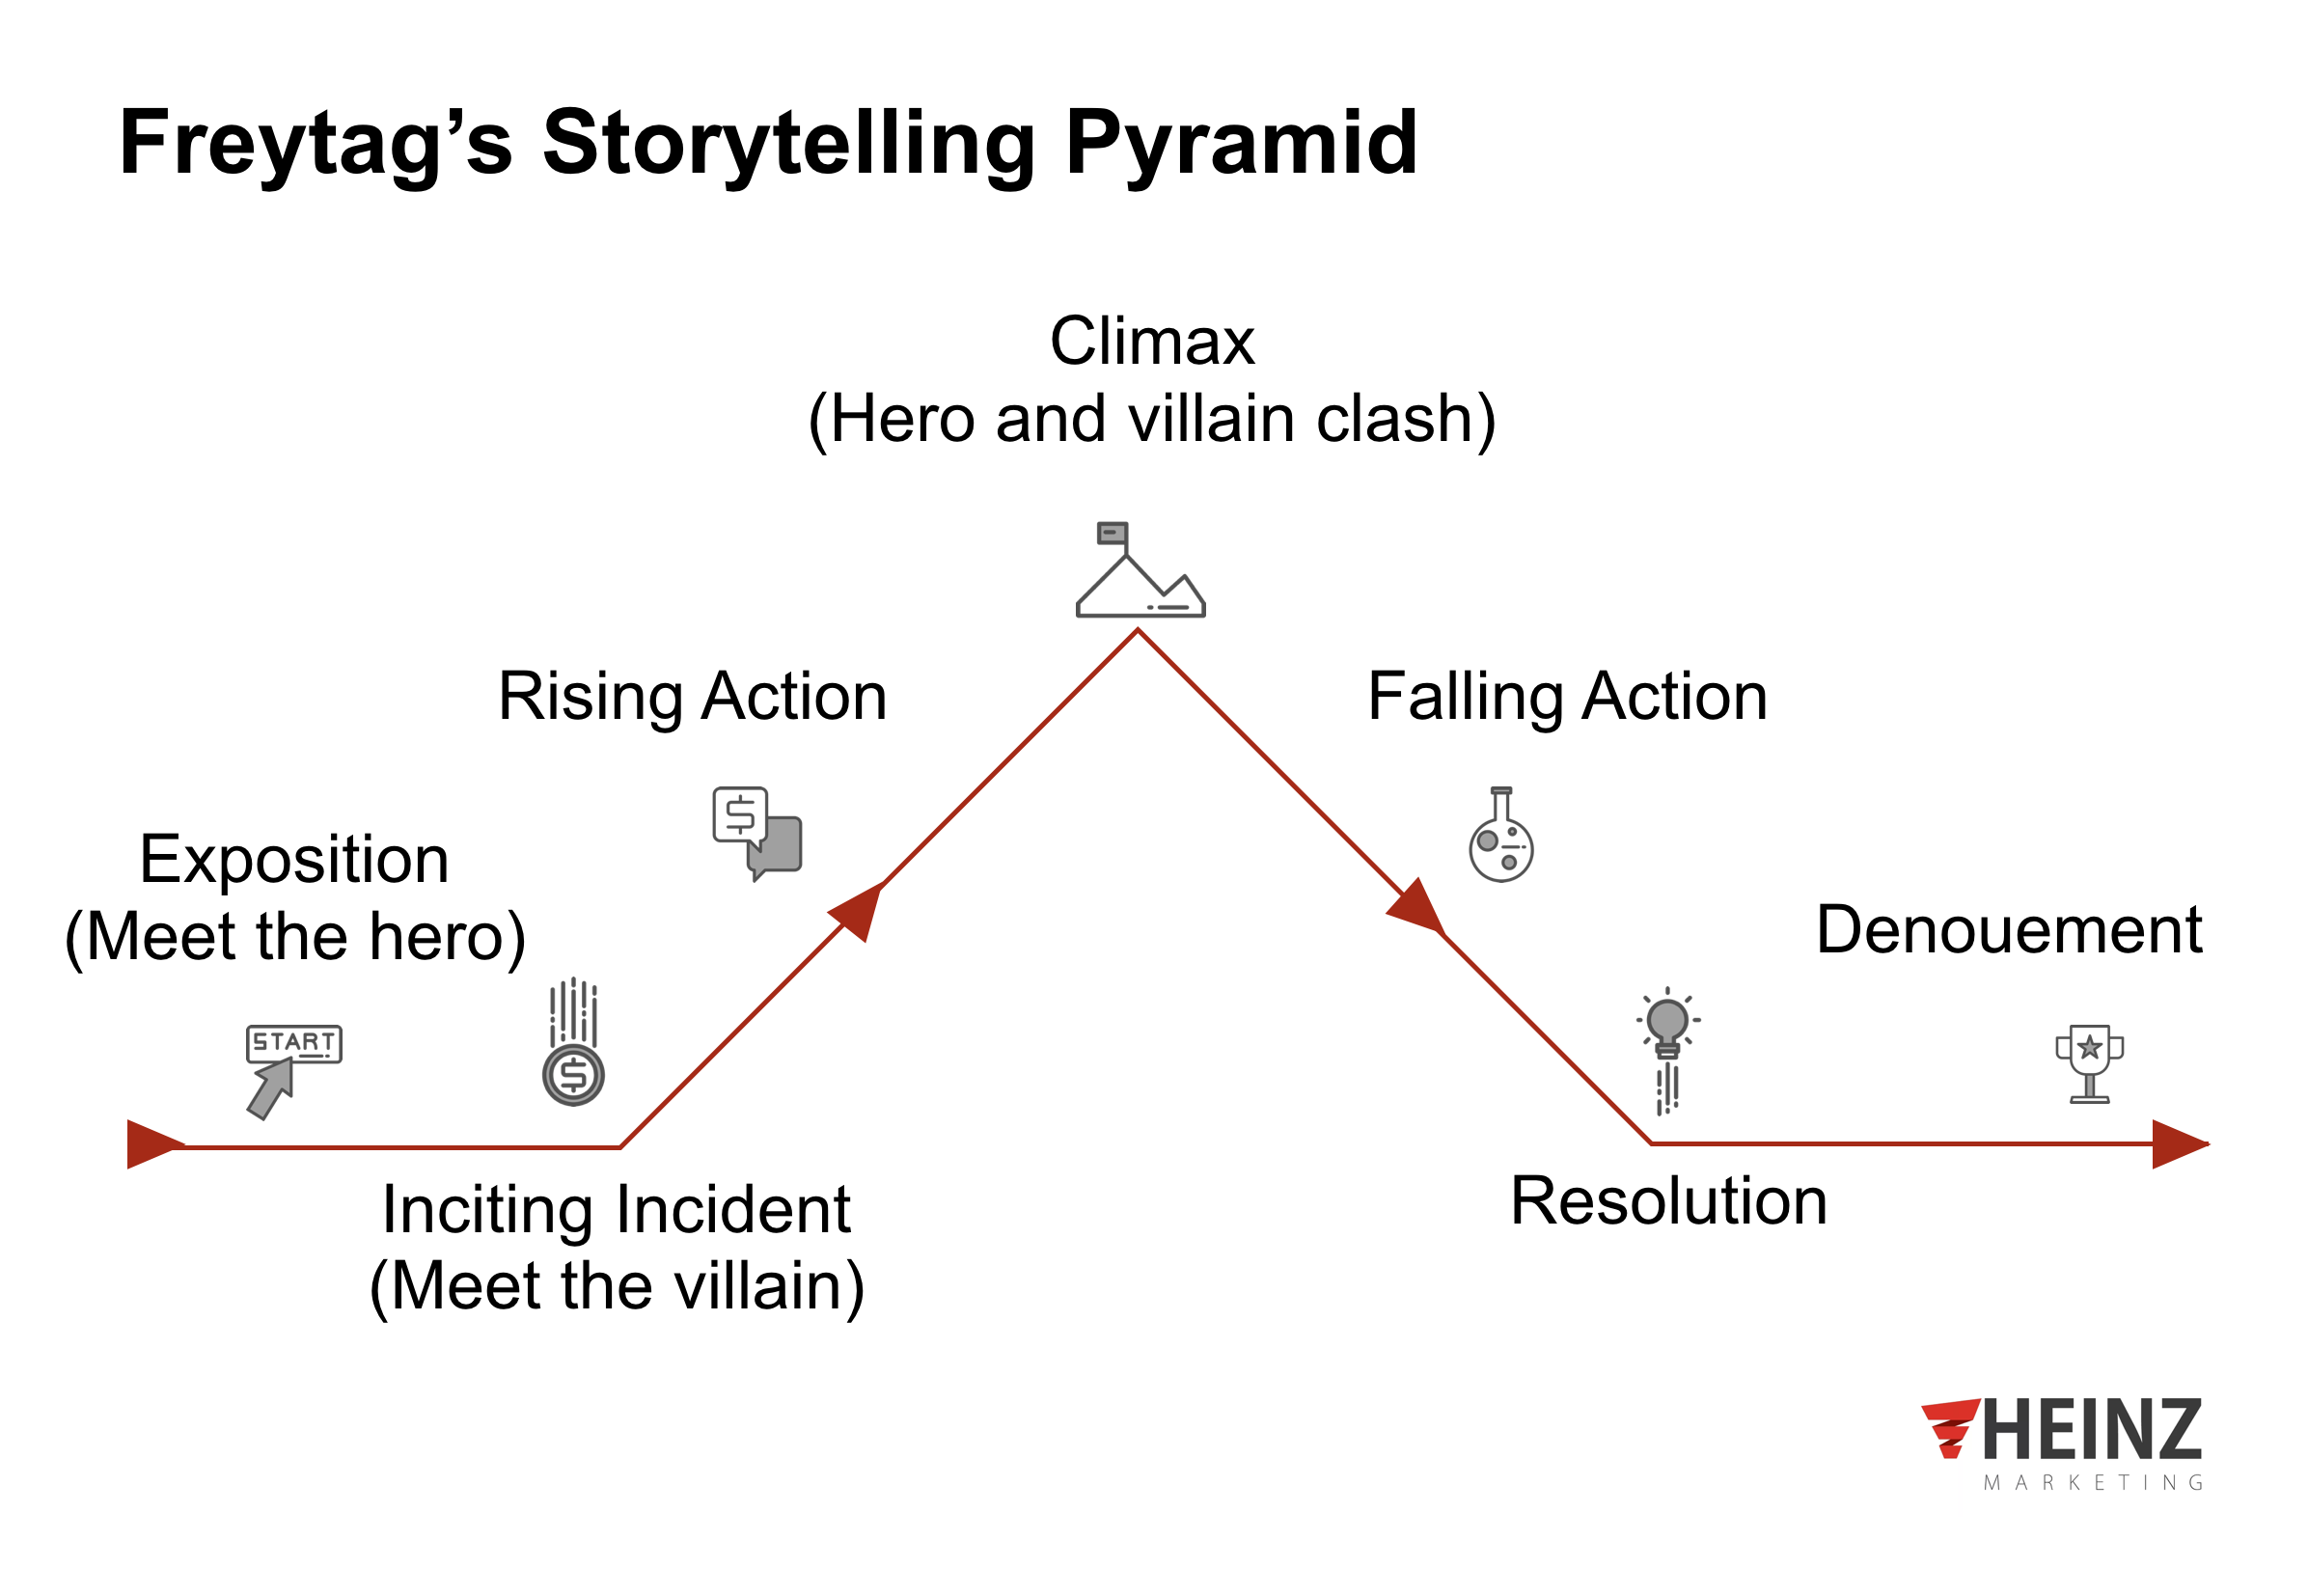 Mockup graphic depicting Freytag's Storytelling Pyramid